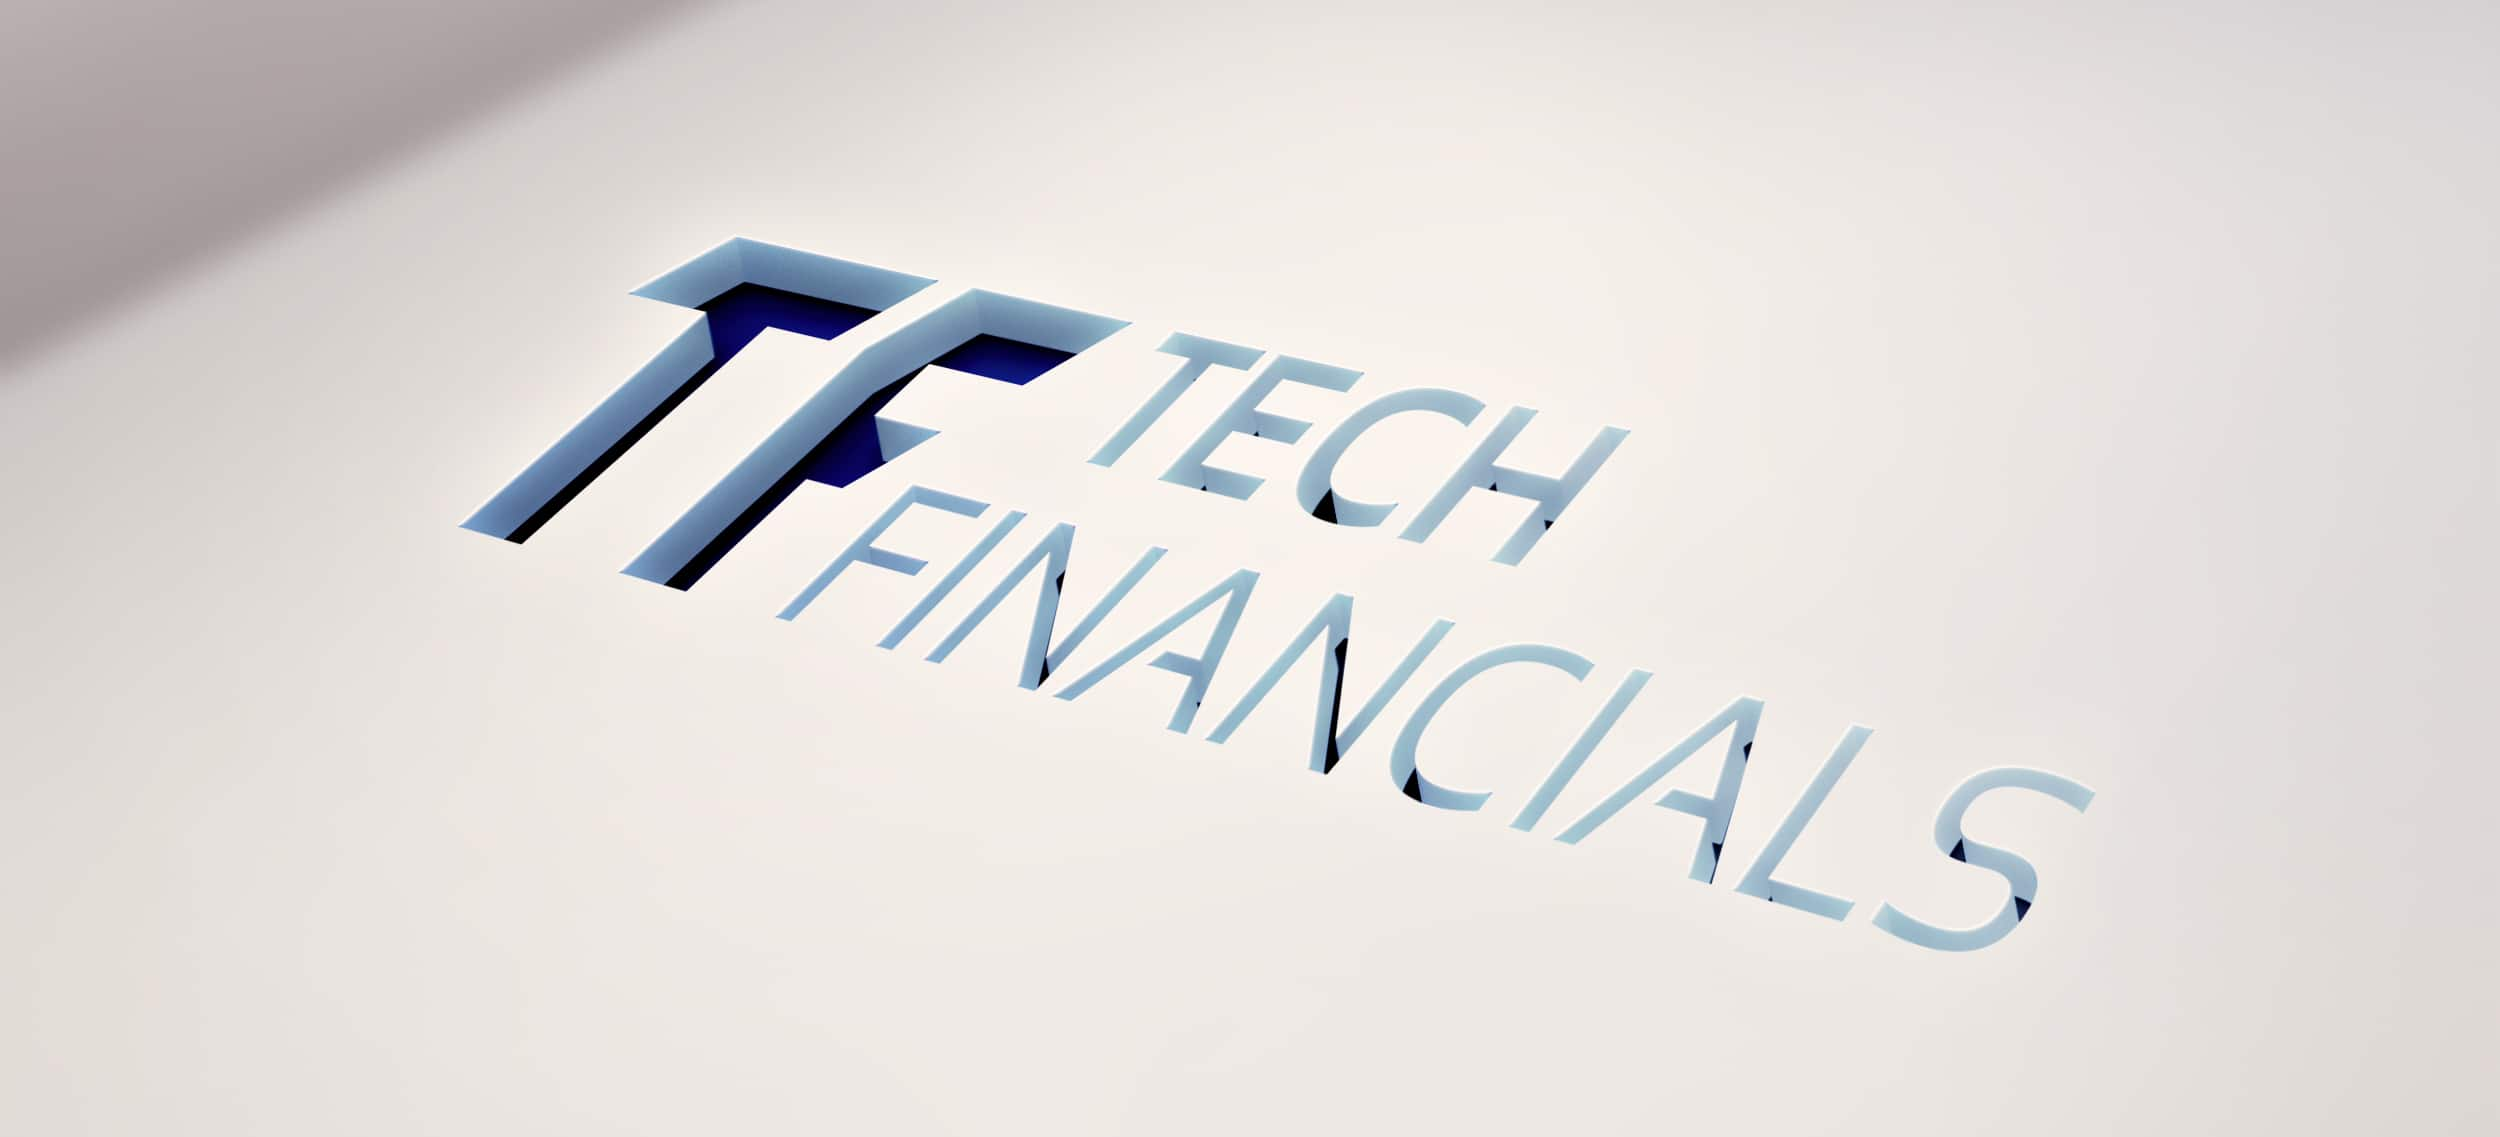 Hillik Nissani Relinquishes Role as Non-Exec Director at TechFinancials